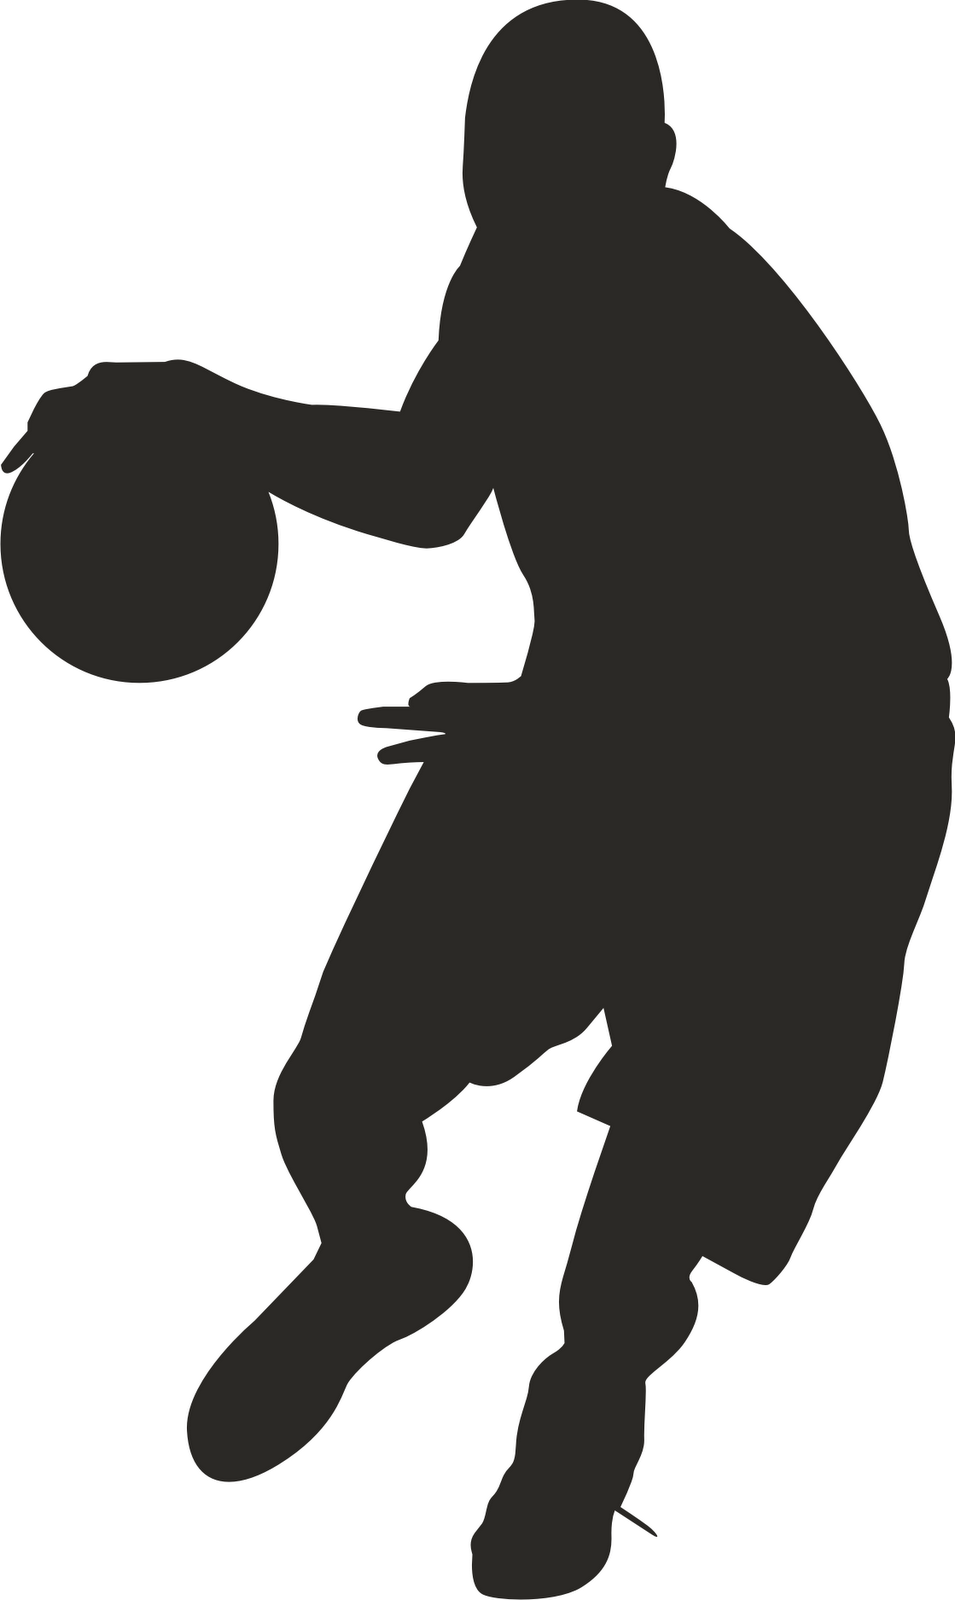 955x1600 Basketball Player Silhouette